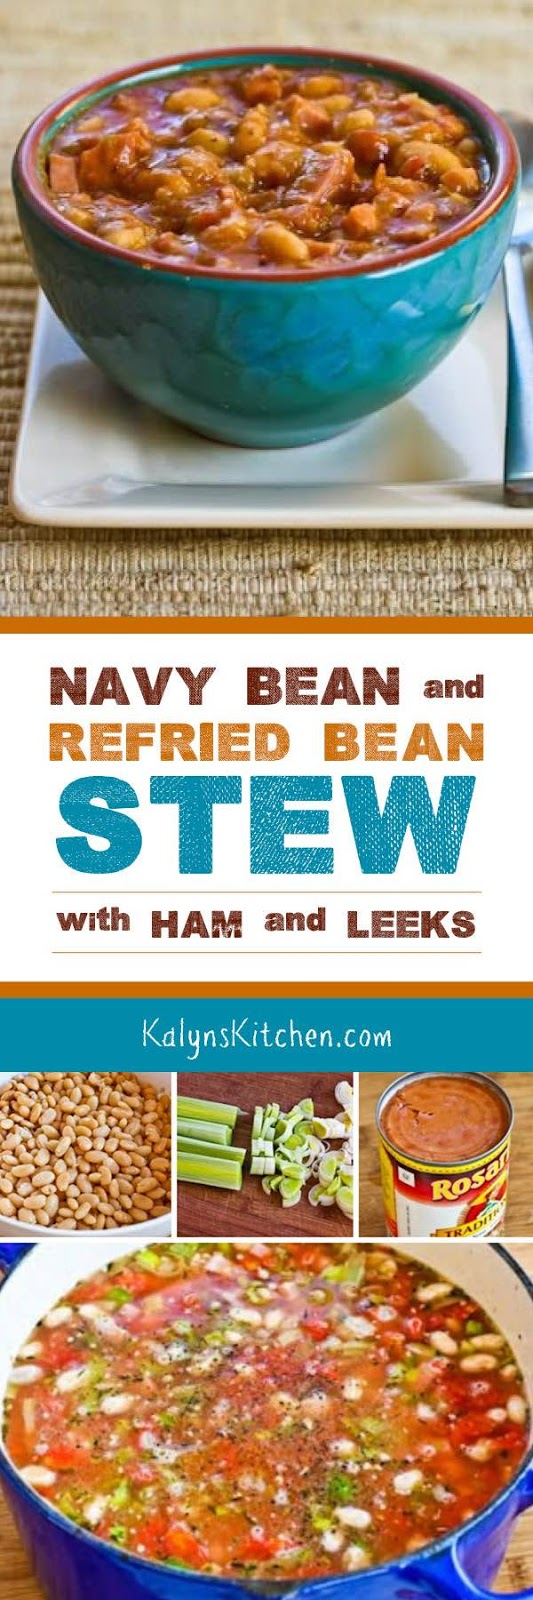 Navy Bean and Refried Bean Stew with Ham, Leeks, and Tomatoes found on ...